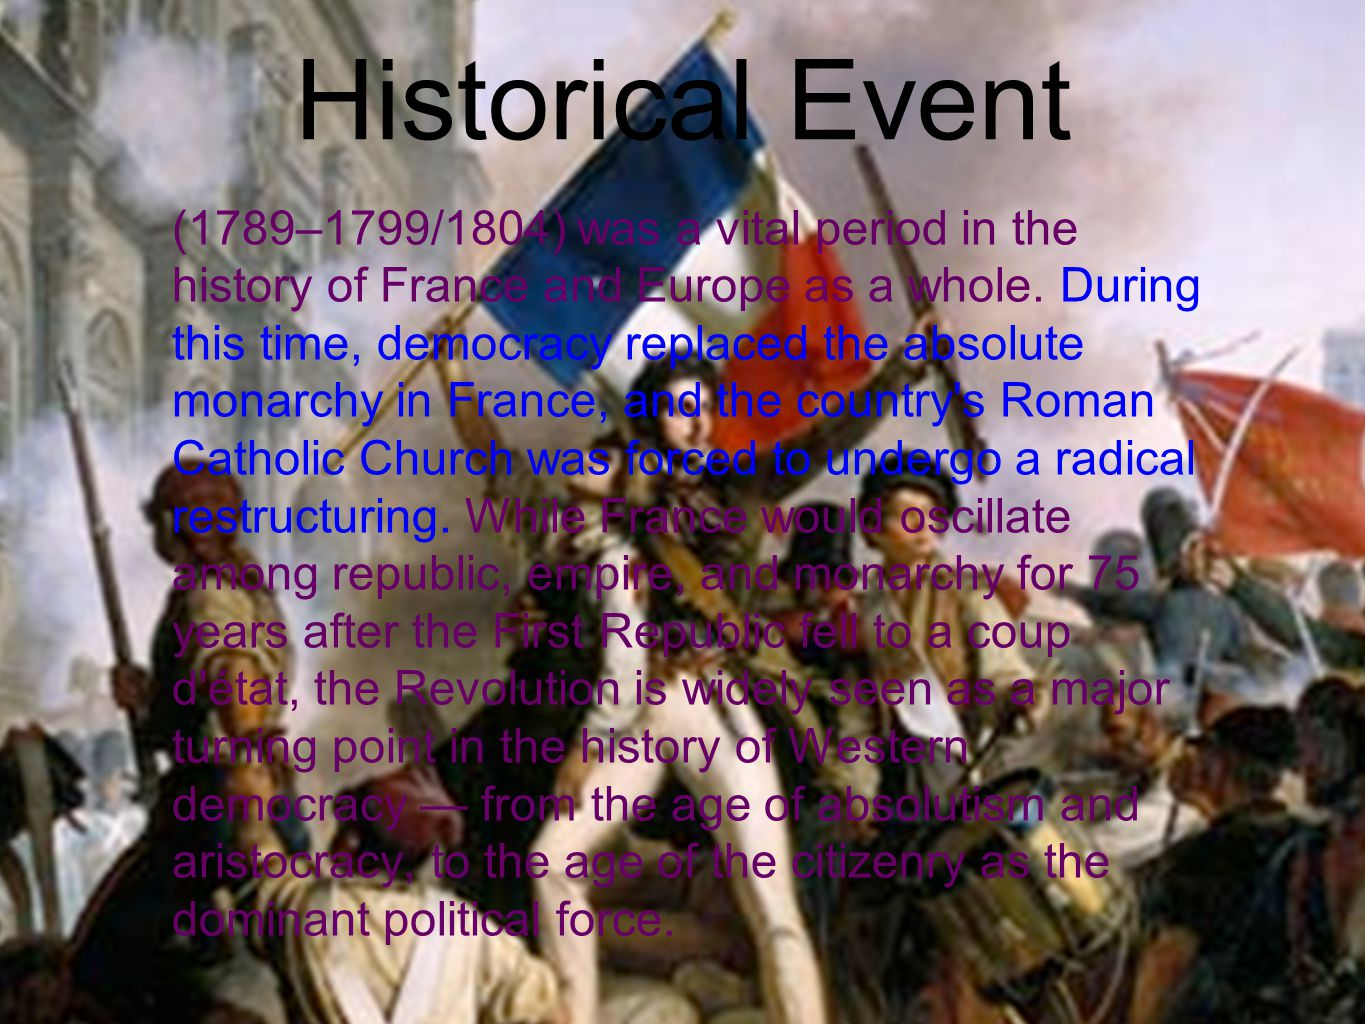 (1789–1799/1804) was a vital period in the history of France and Europe as a whole.